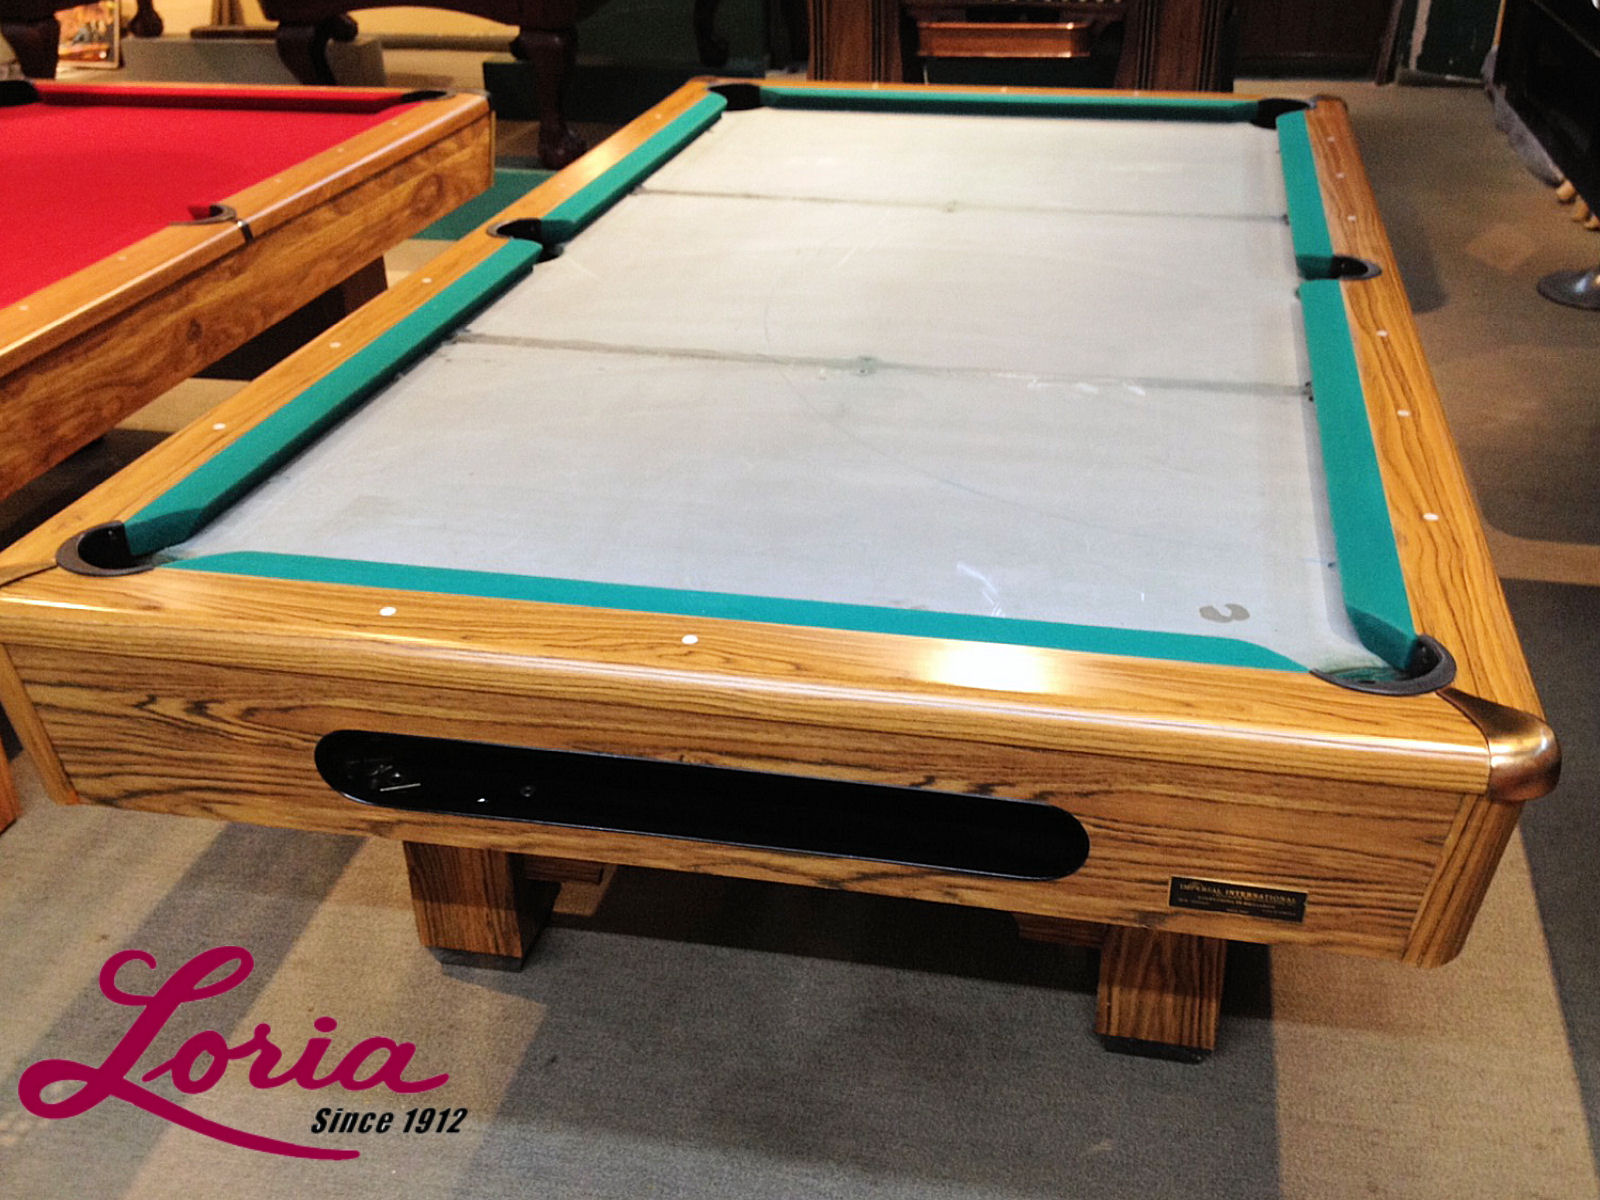 Ft Pool Table Best Table - Showood pool table